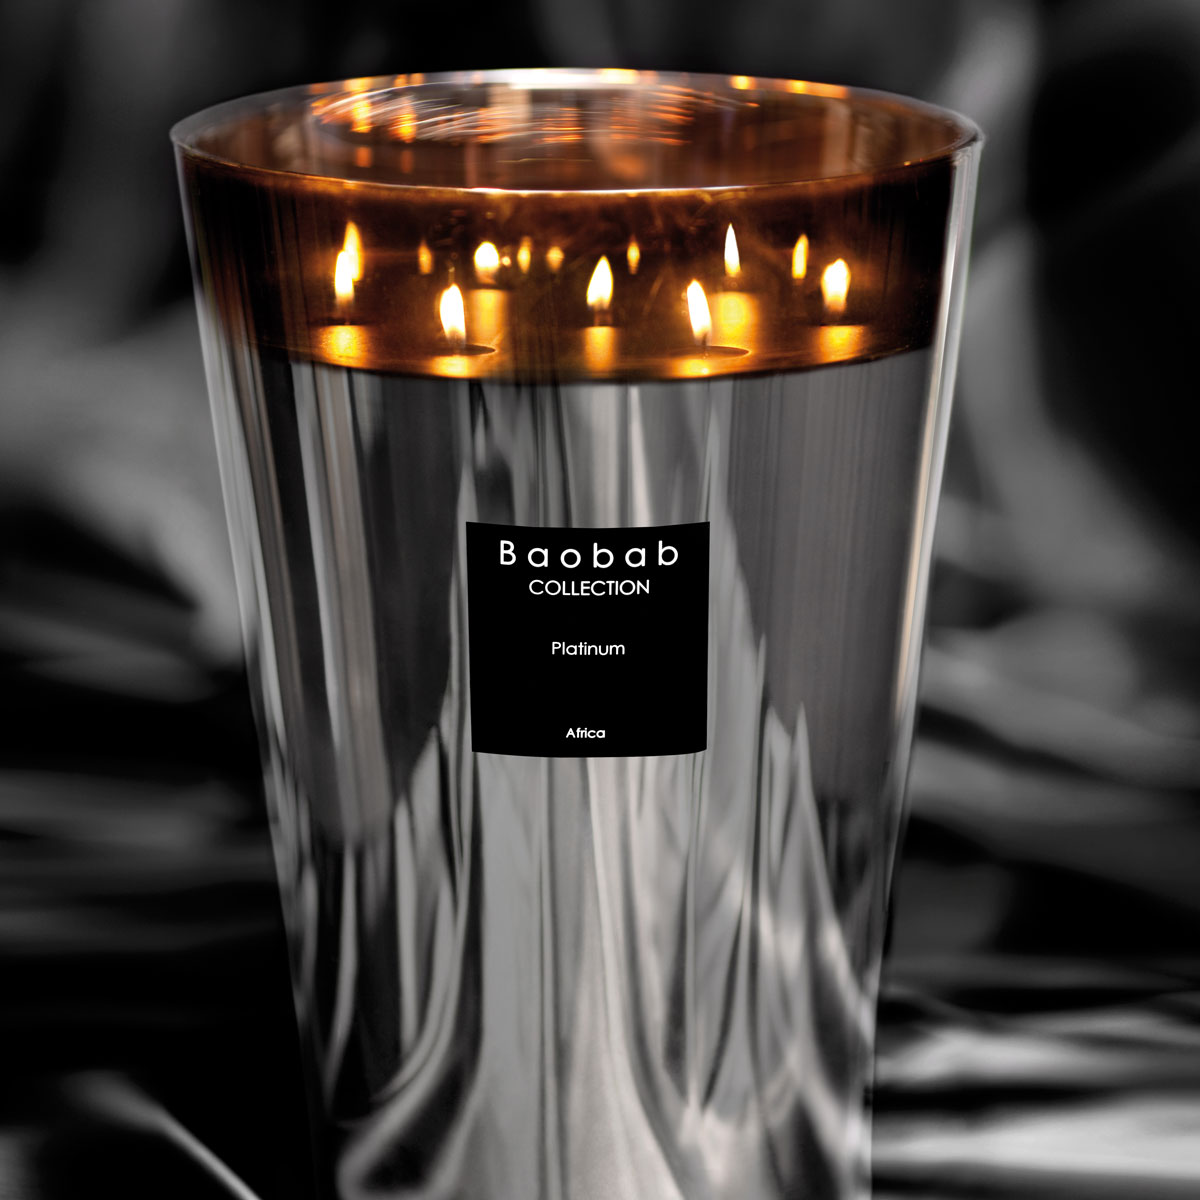 baobab collection platinum candle design oostende. Black Bedroom Furniture Sets. Home Design Ideas